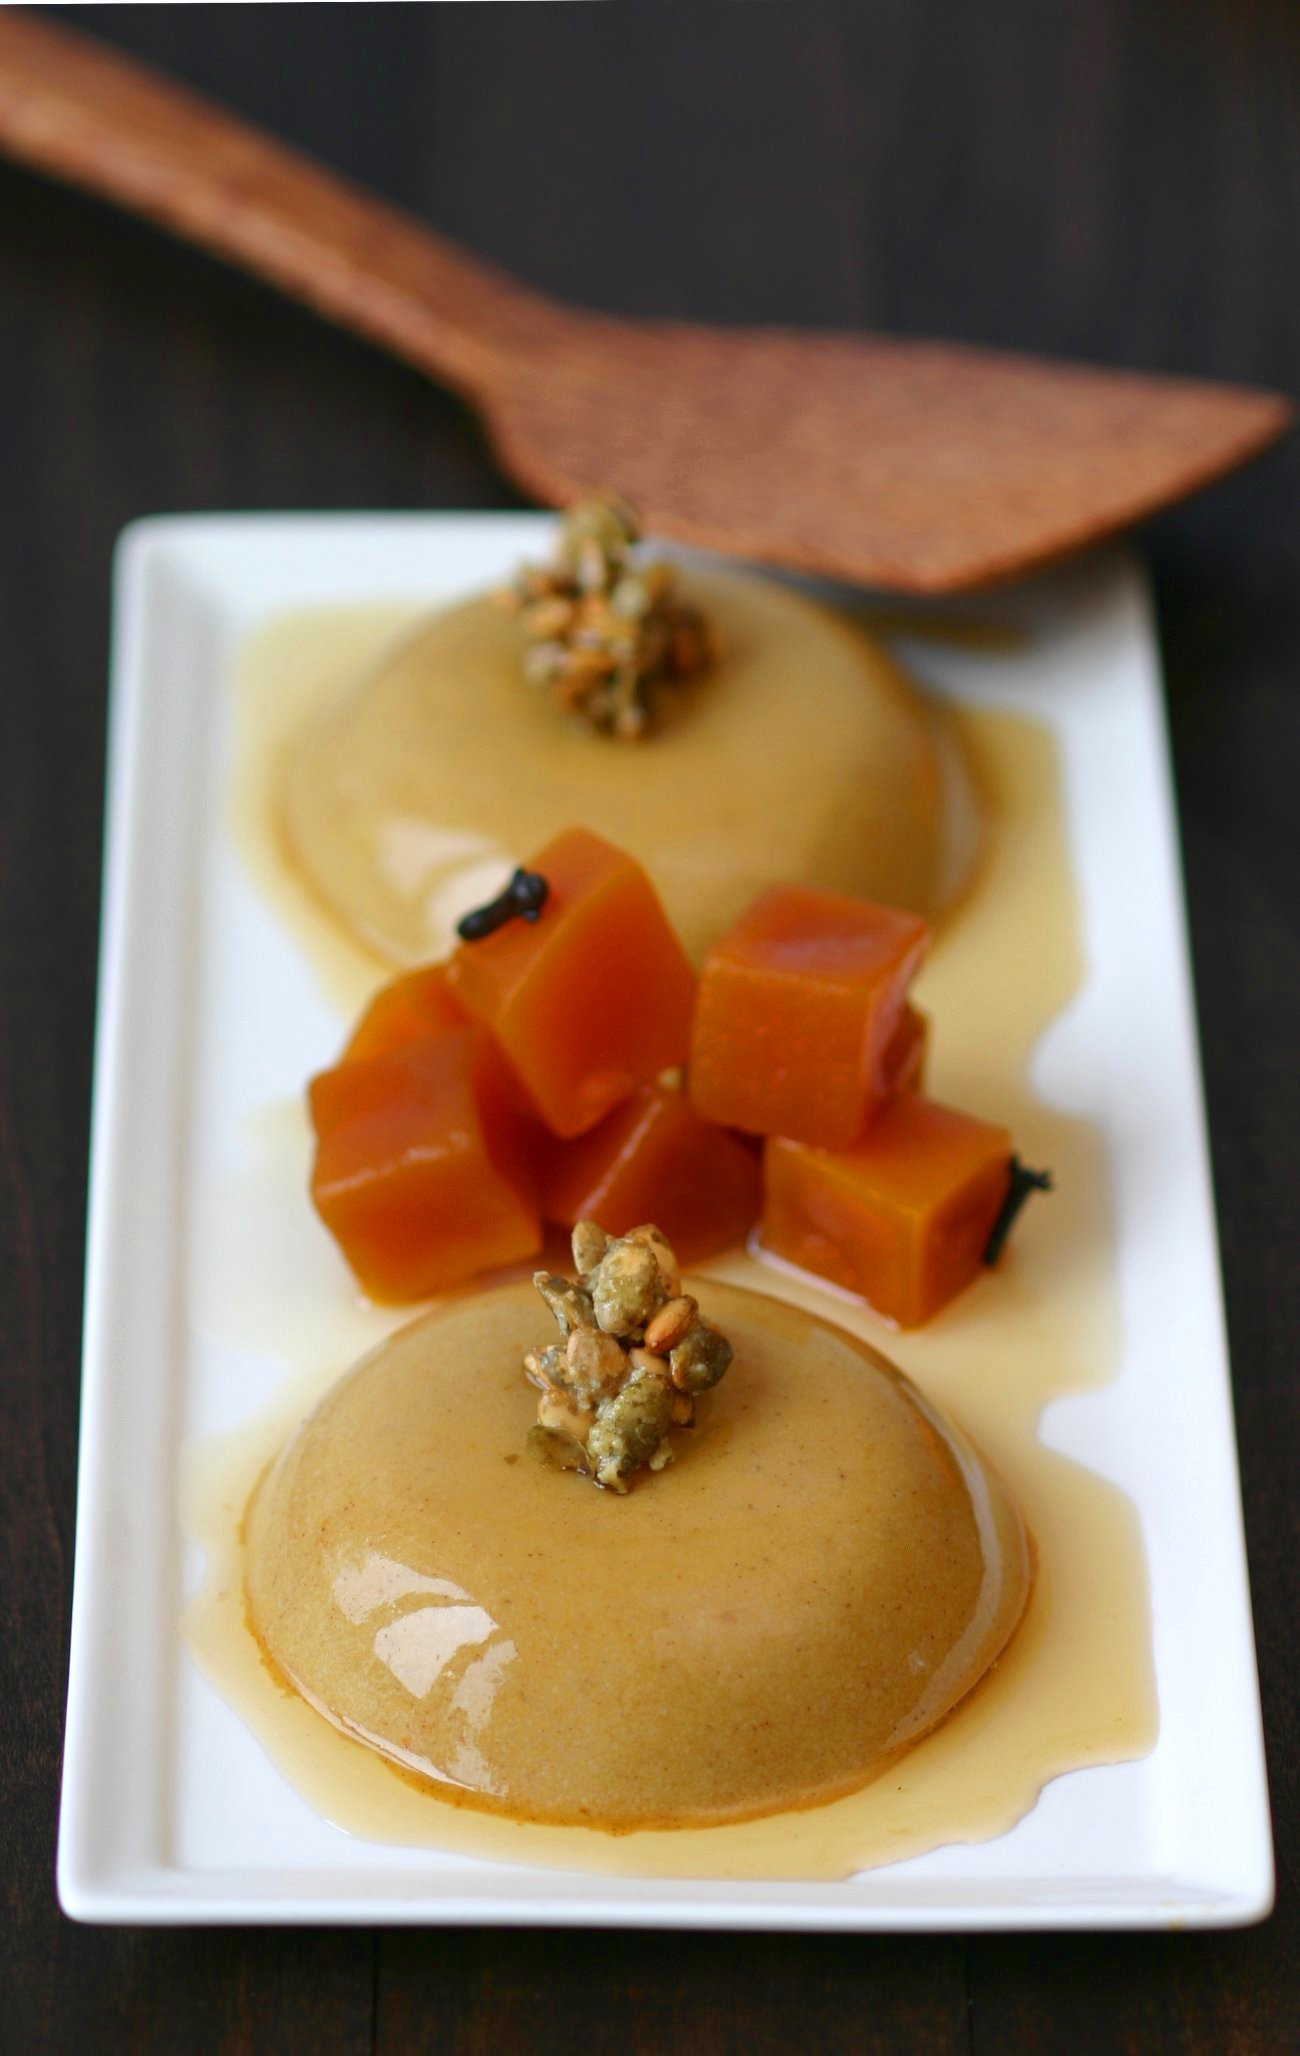 Silky and delicate, this recipe for Vegan Pumpkin Panna Cotta with Pumpkin Seed Brittle is a true showstopper.